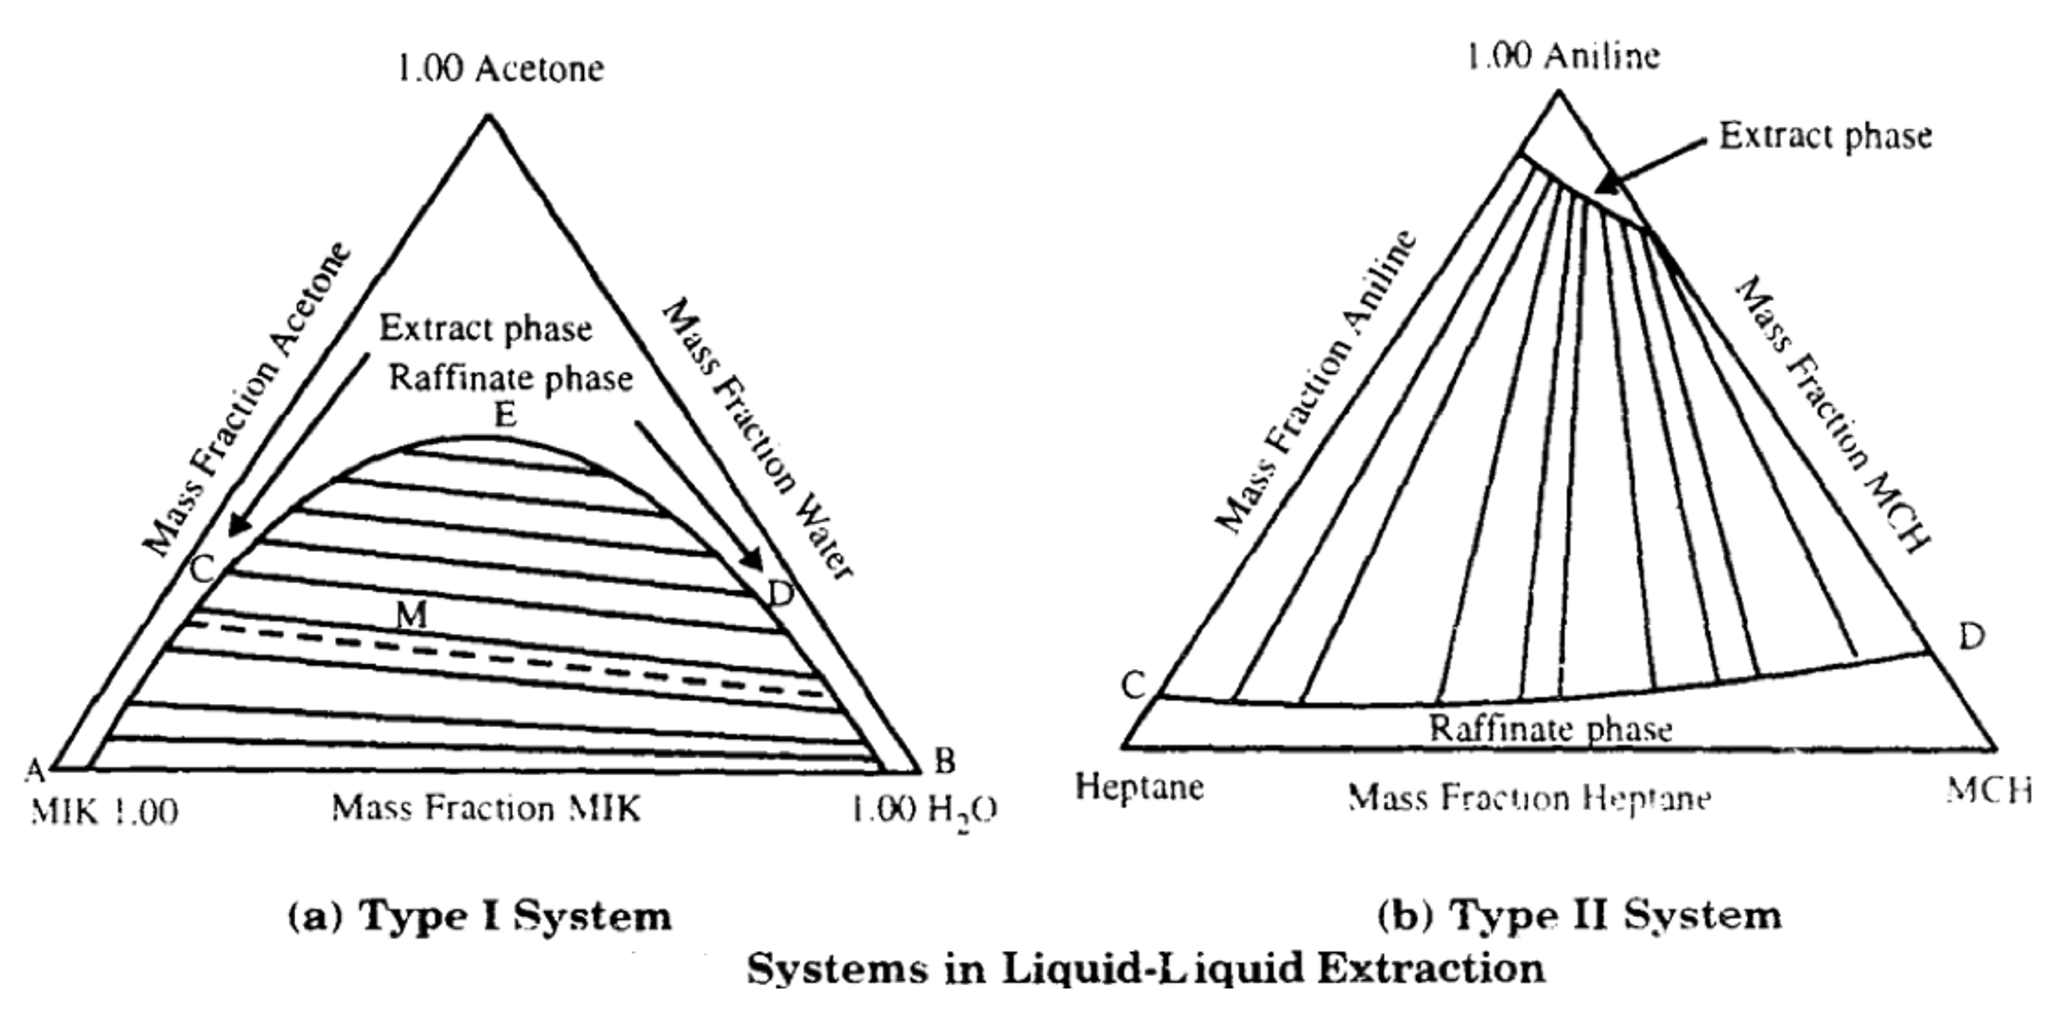 triangular diagram for liquid extraction vivint element thermostat wiring solved what the differences between a type 1 and 2